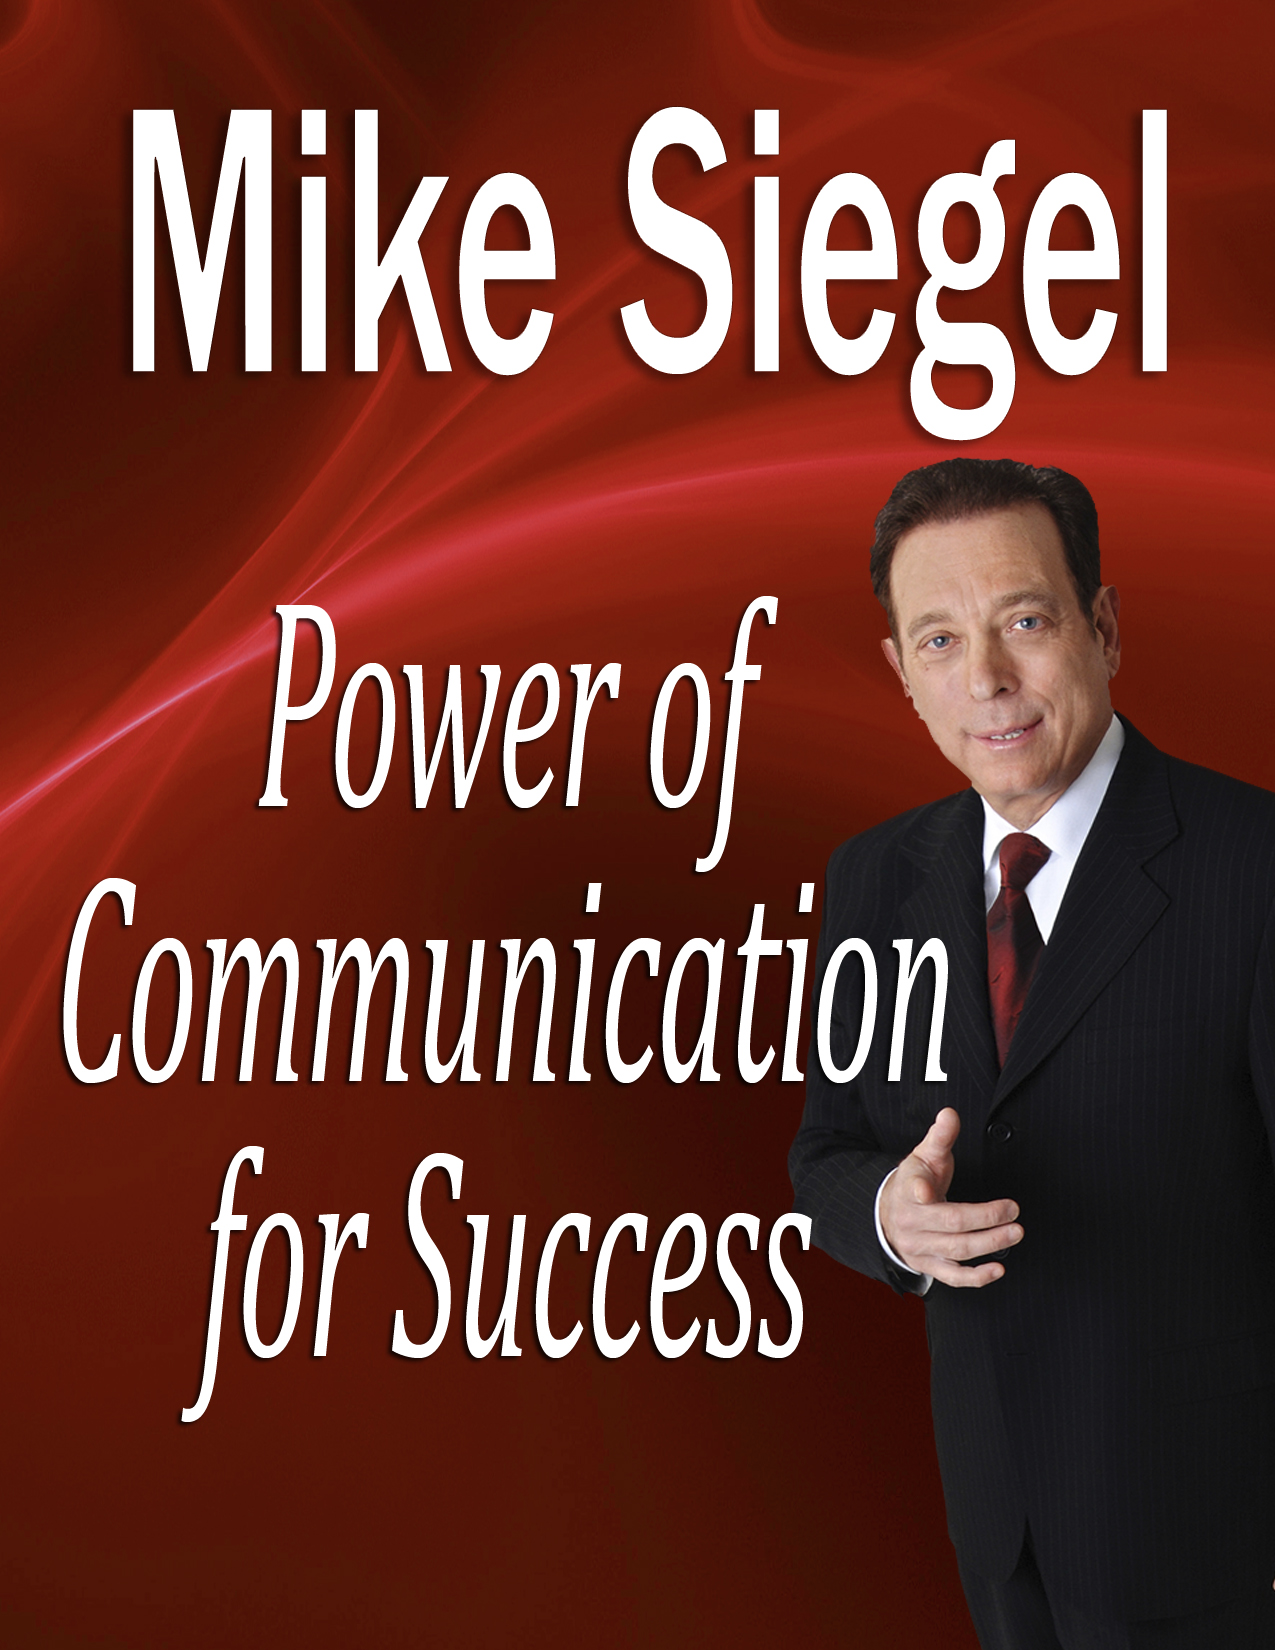 power_of_communication_for_success_by_mike_siegel